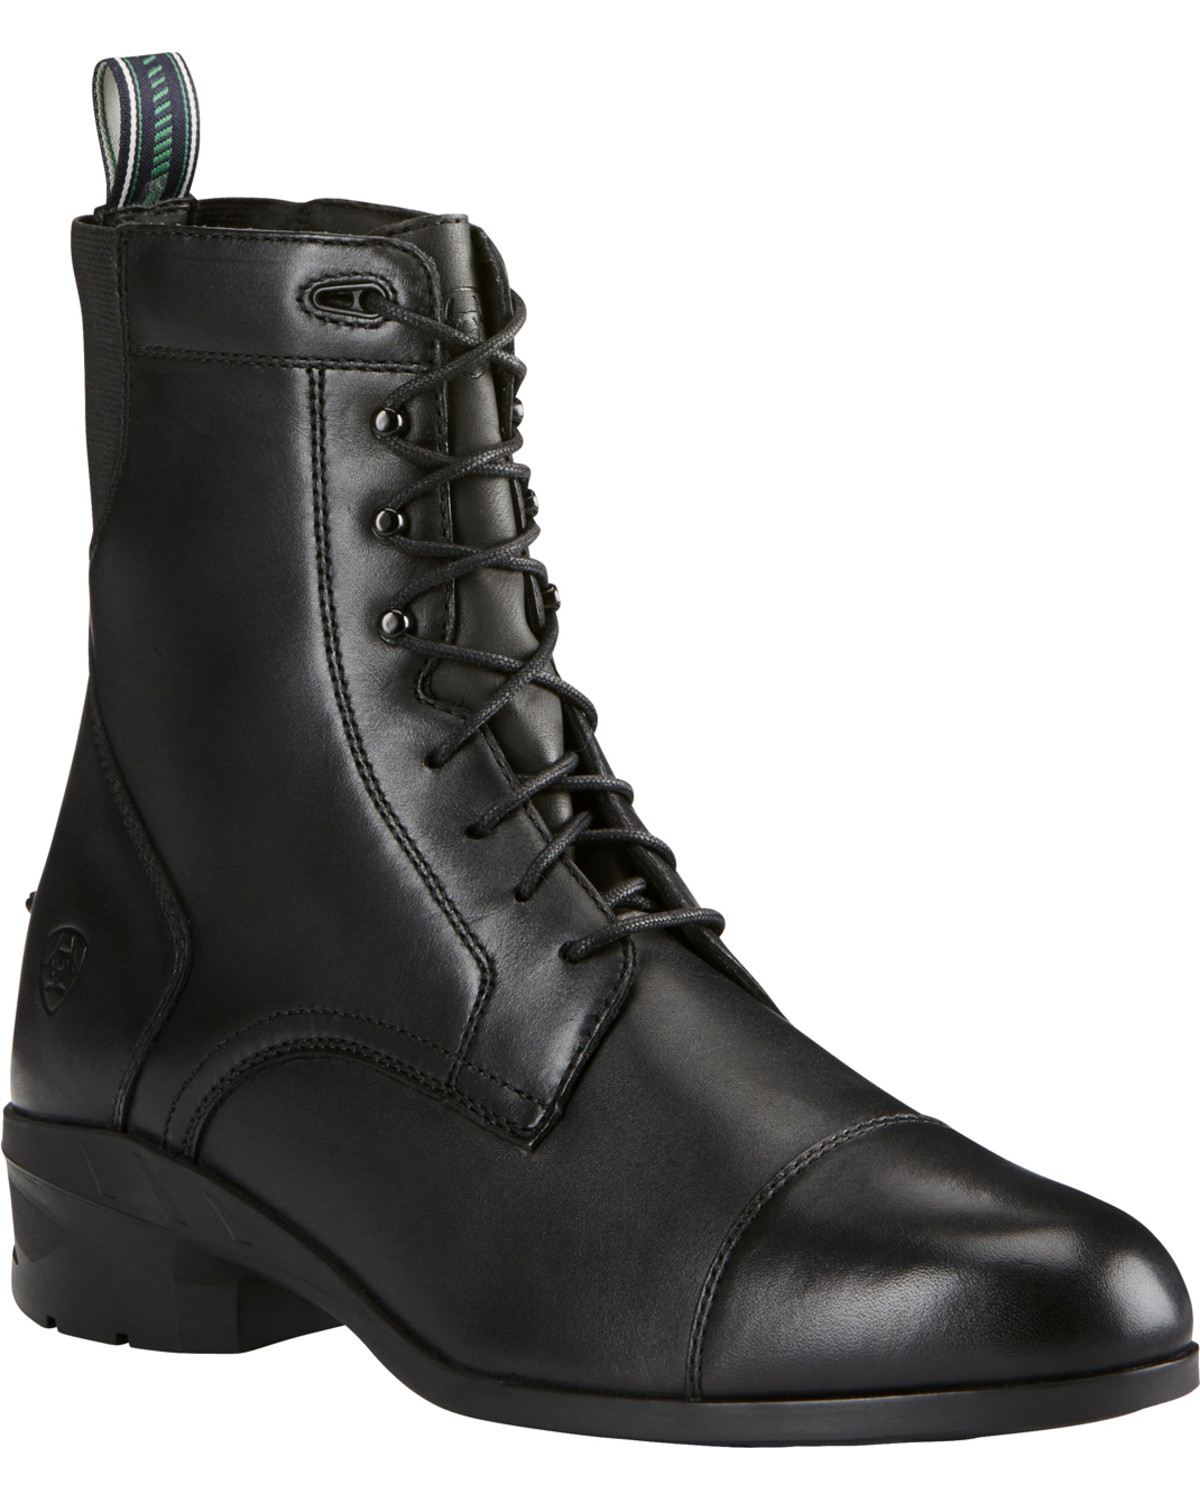 Ariat Men's Heritage IV Lace Up Paddock